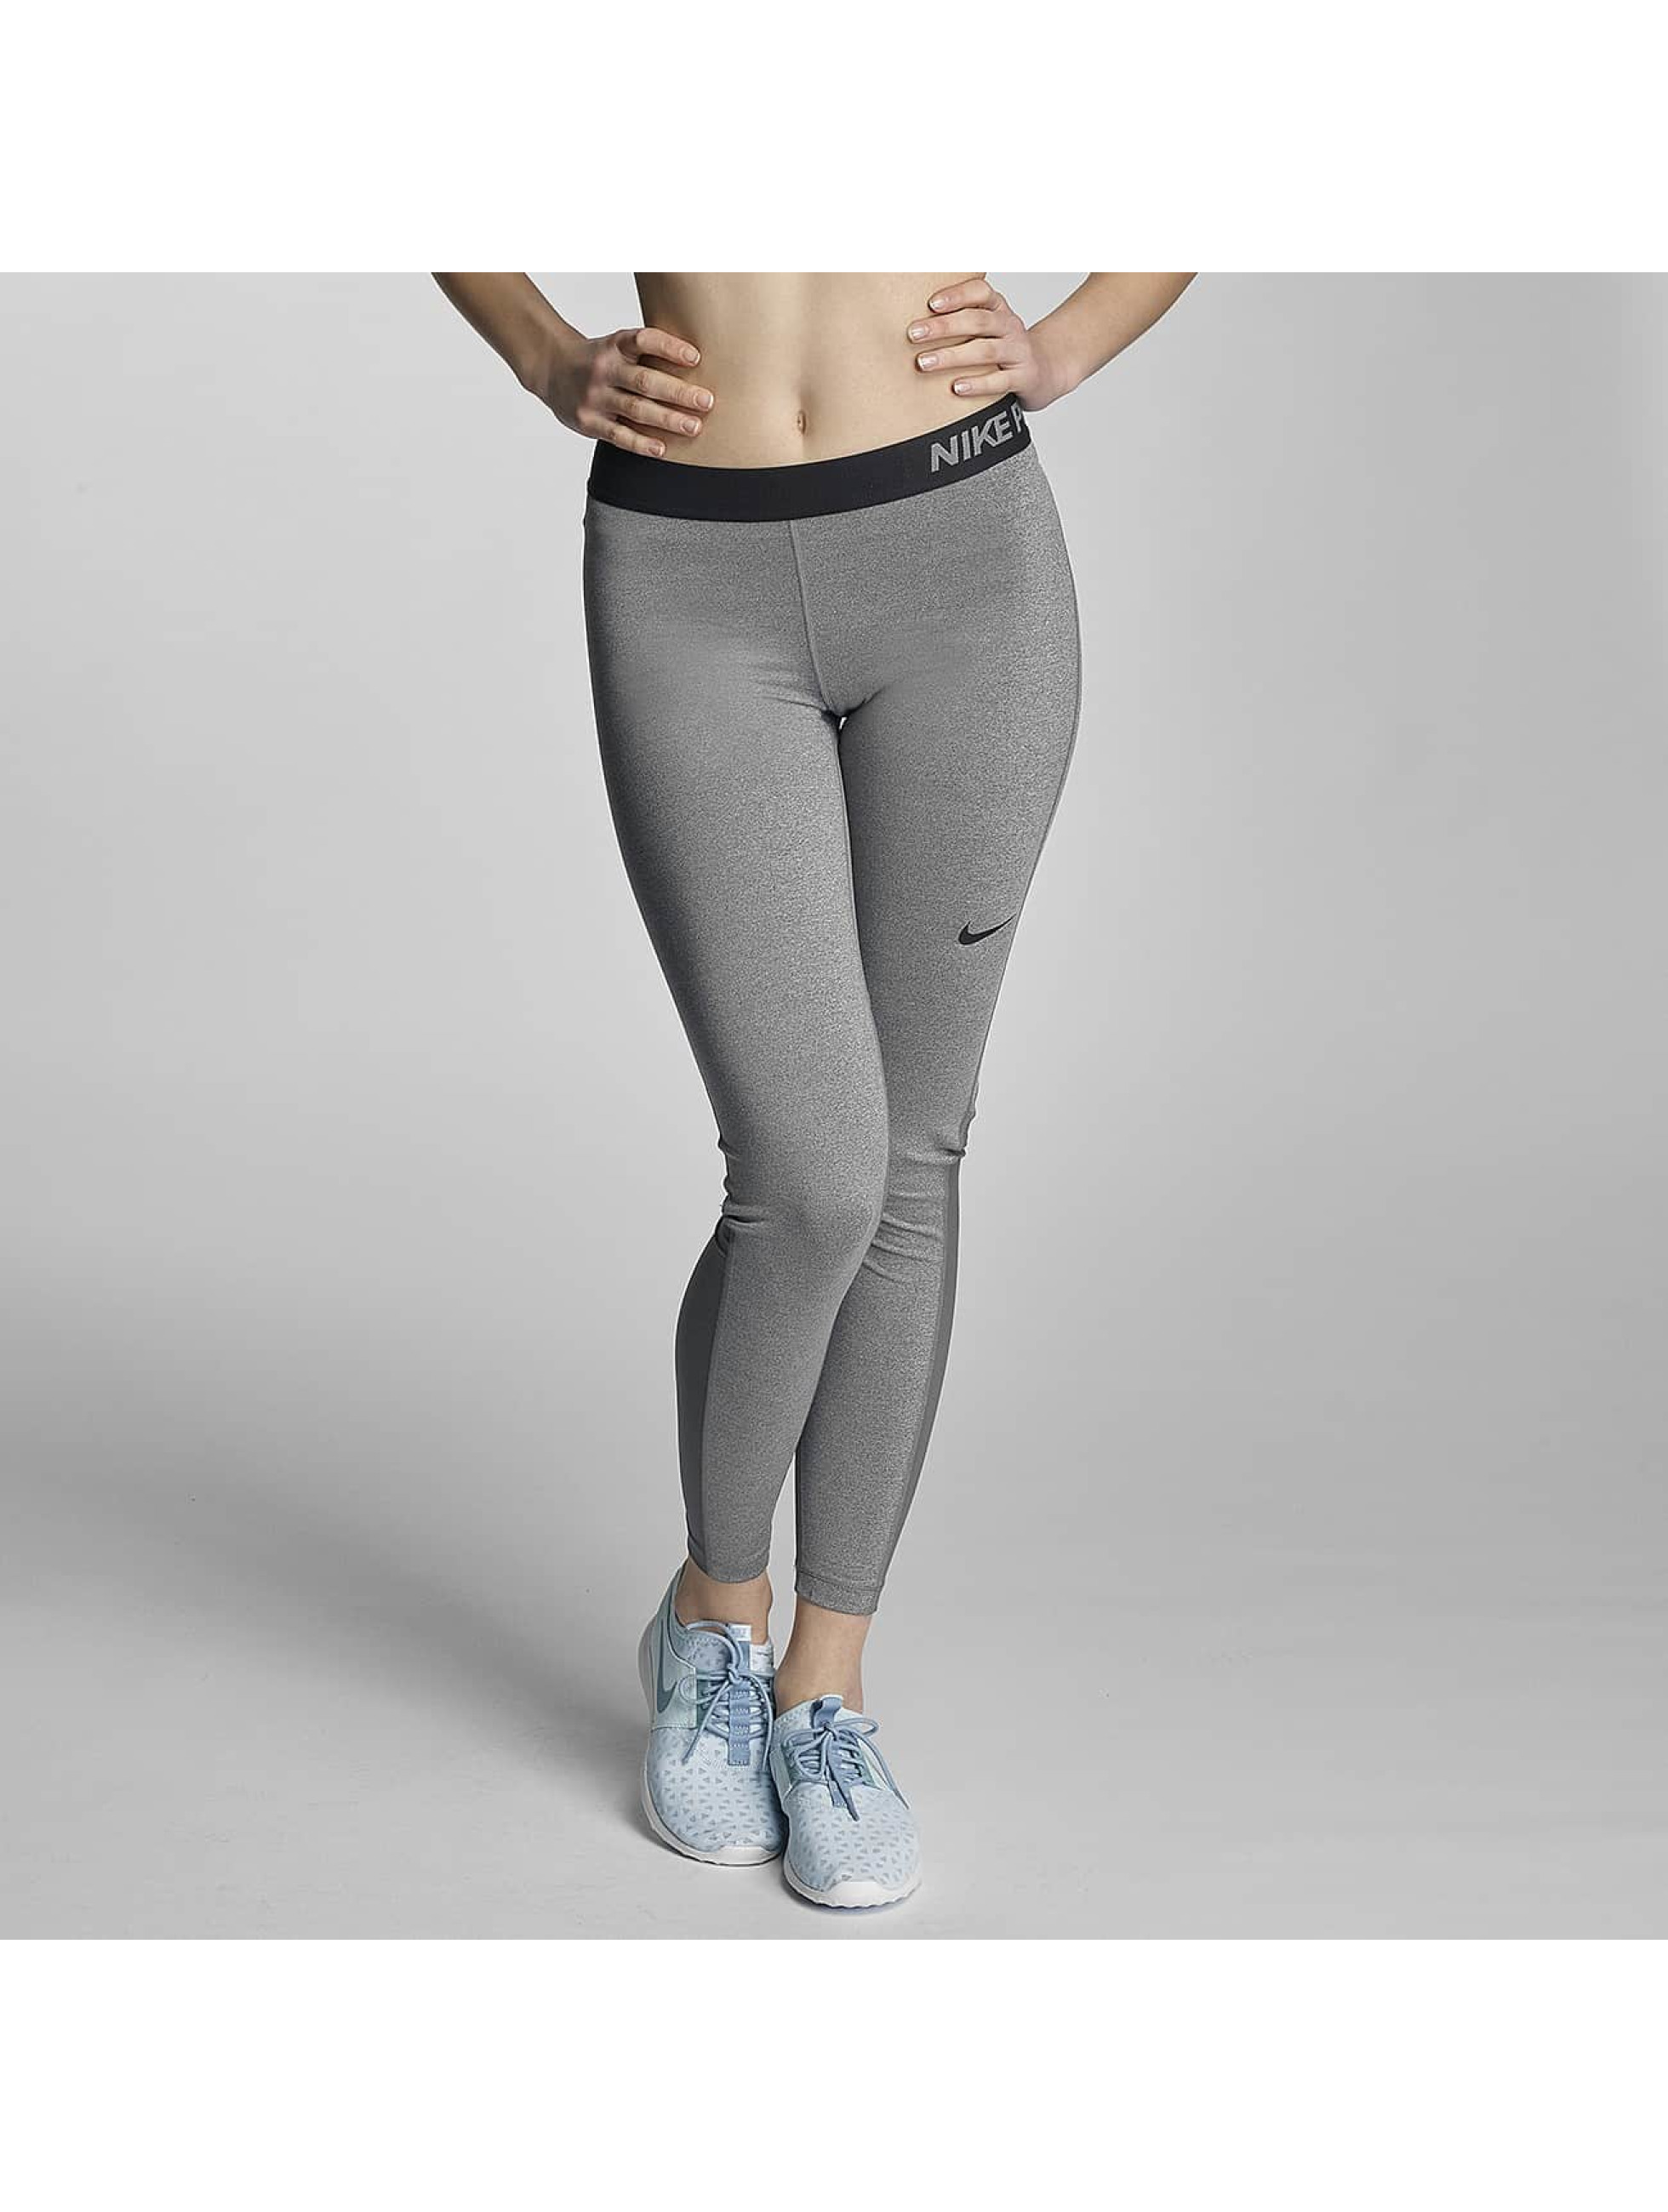 nike pro cool gris femme legging nike acheter pas cher pantalon 296429. Black Bedroom Furniture Sets. Home Design Ideas